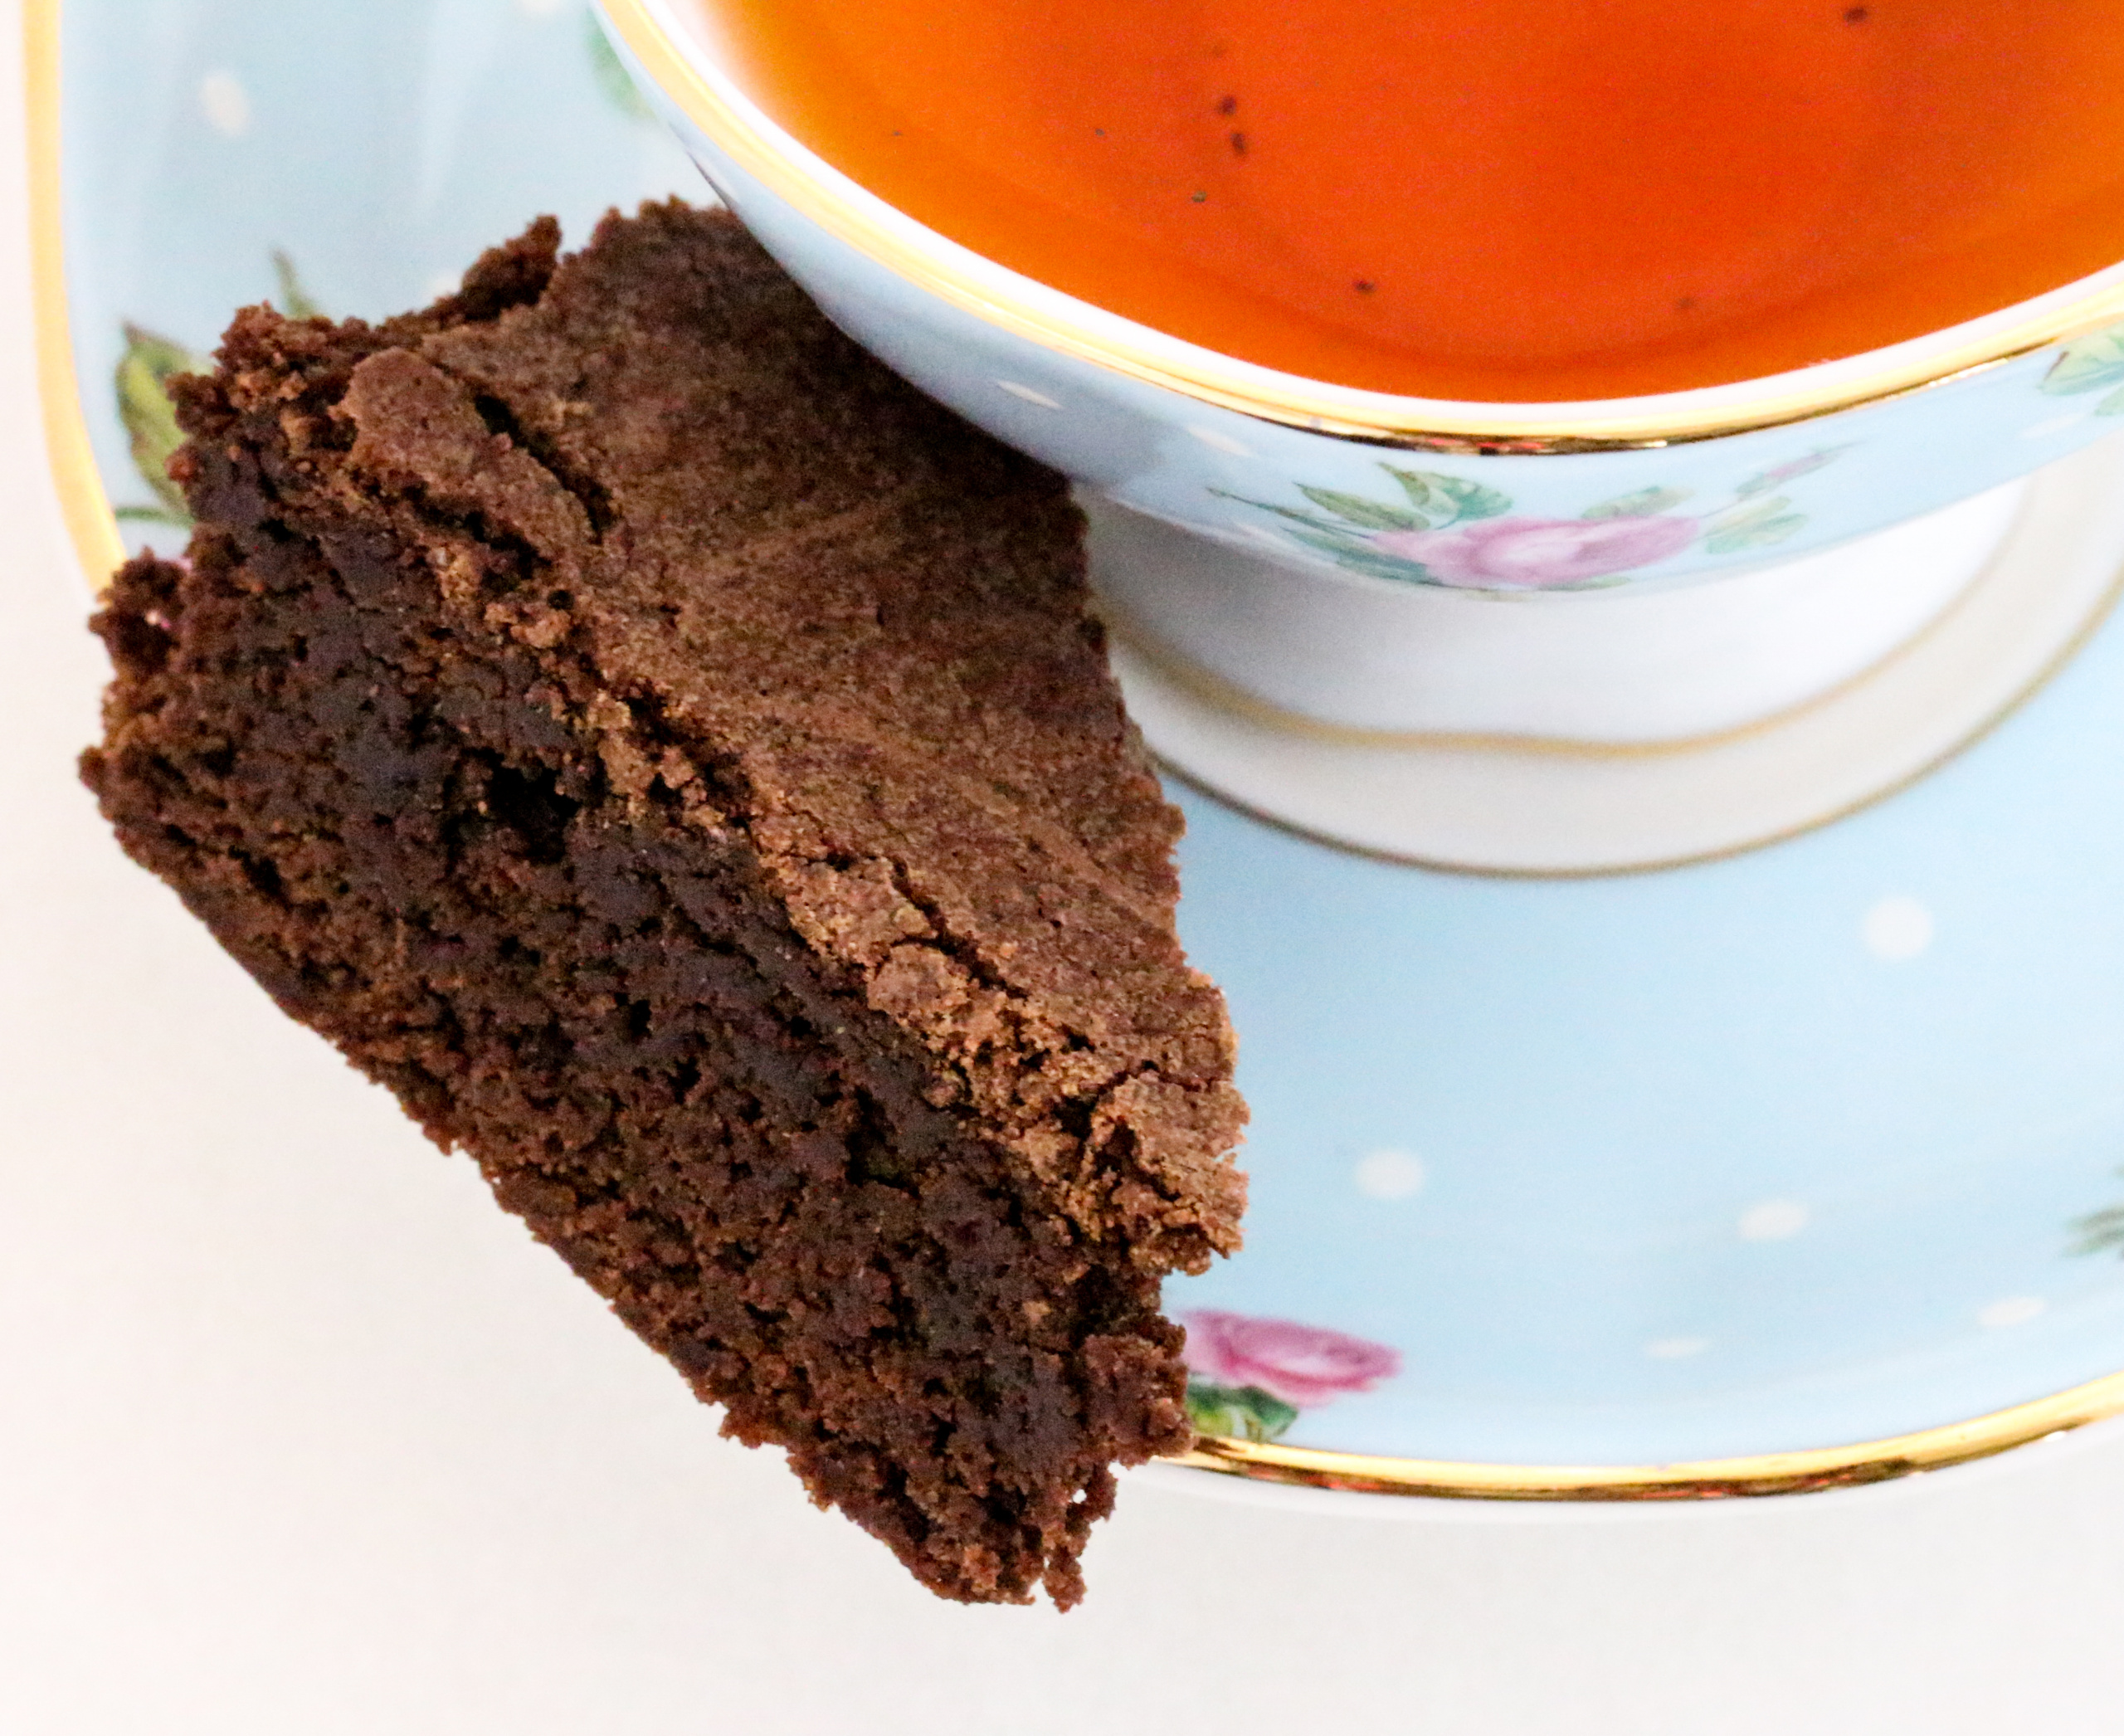 Rich and thick, almost like fudge, Olga's Brownies are scrumptious treats that will satisfy the most avid chocoholic! And cleanup is a breeze since the recipe uses only 1 saucepan to whisk the ingredients together. Recipe shared with permission granted by Barbara Ross, author of SEALED OFF.